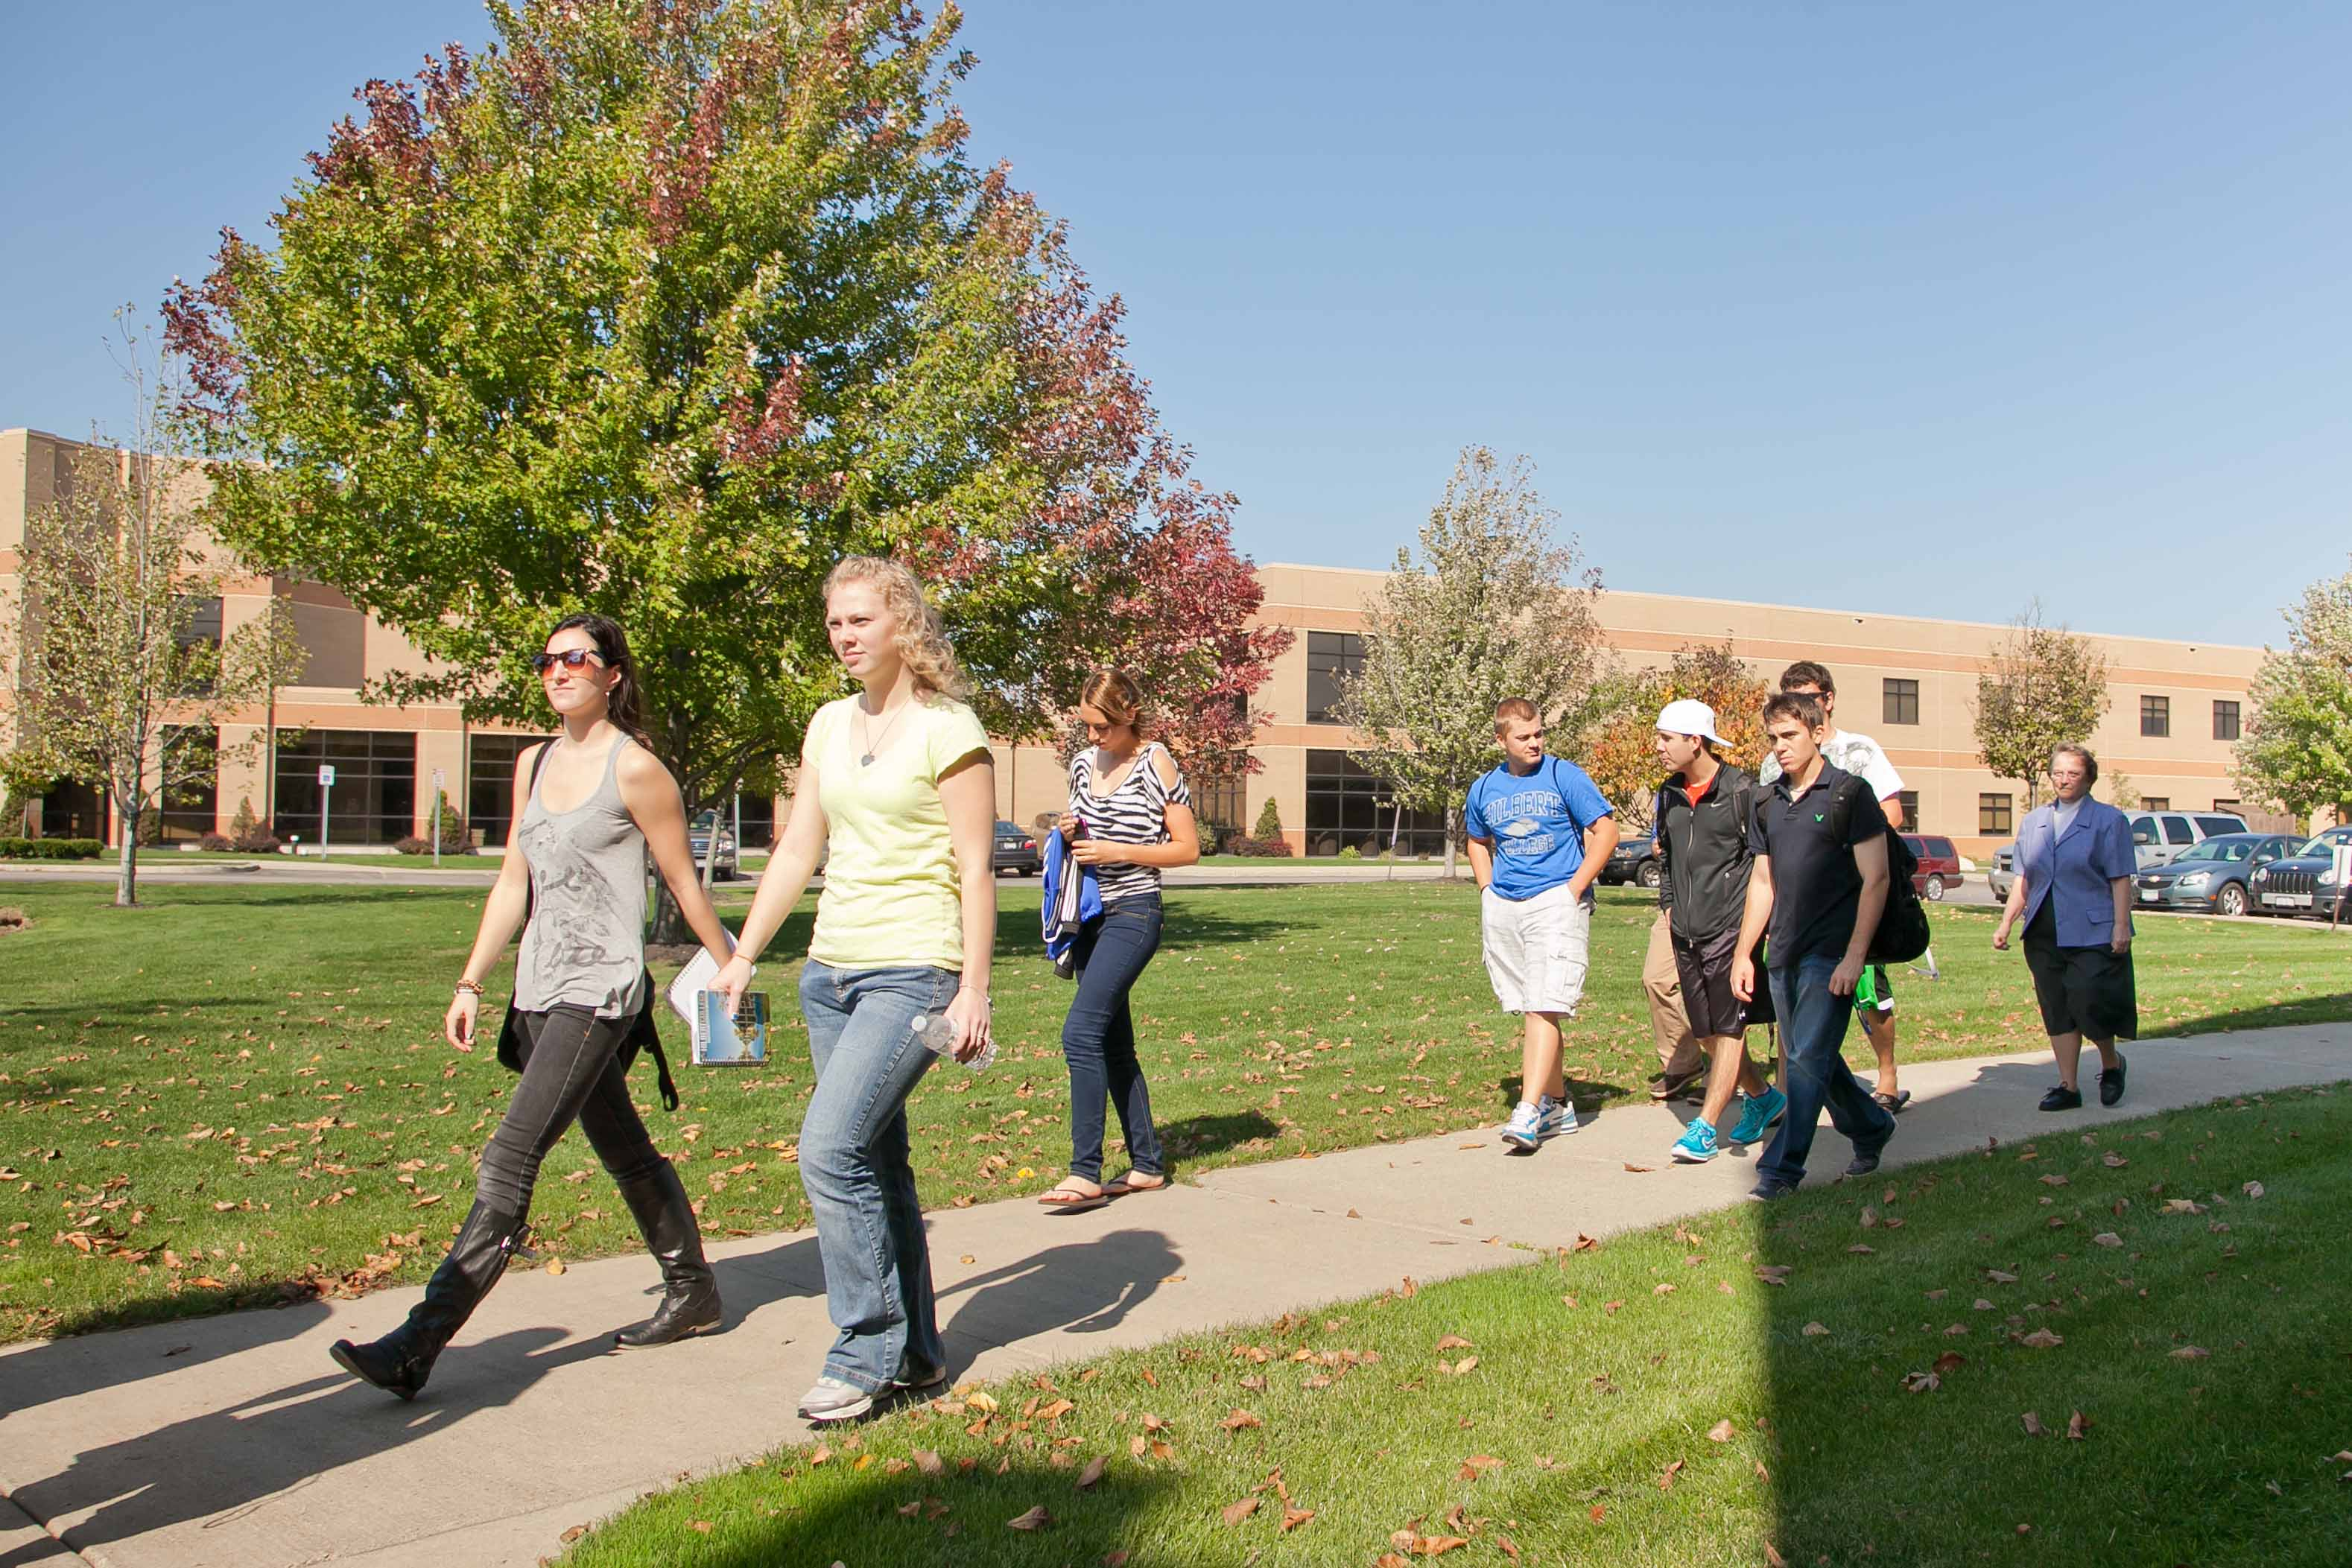 Hilbert Students walking